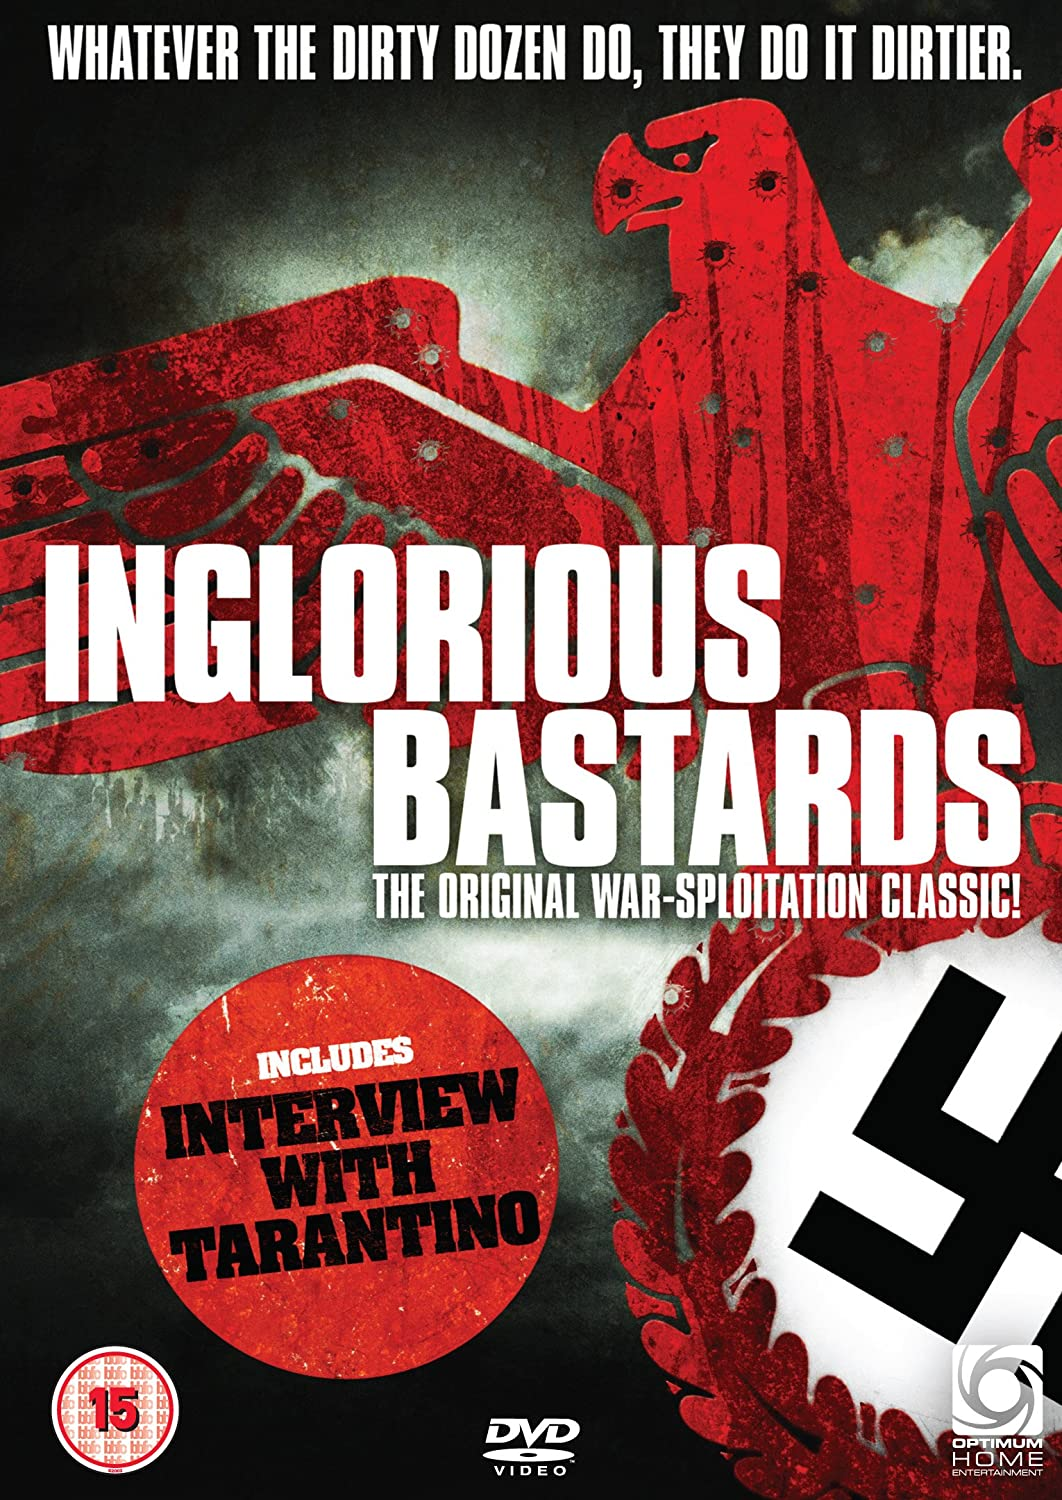 inglorious bastards dvd amazon co uk bo svenson peter hooten inglorious bastards dvd amazon co uk bo svenson peter hooten fred williamson michael pergolani jackie basehart enzo g castellari dvd blu ray